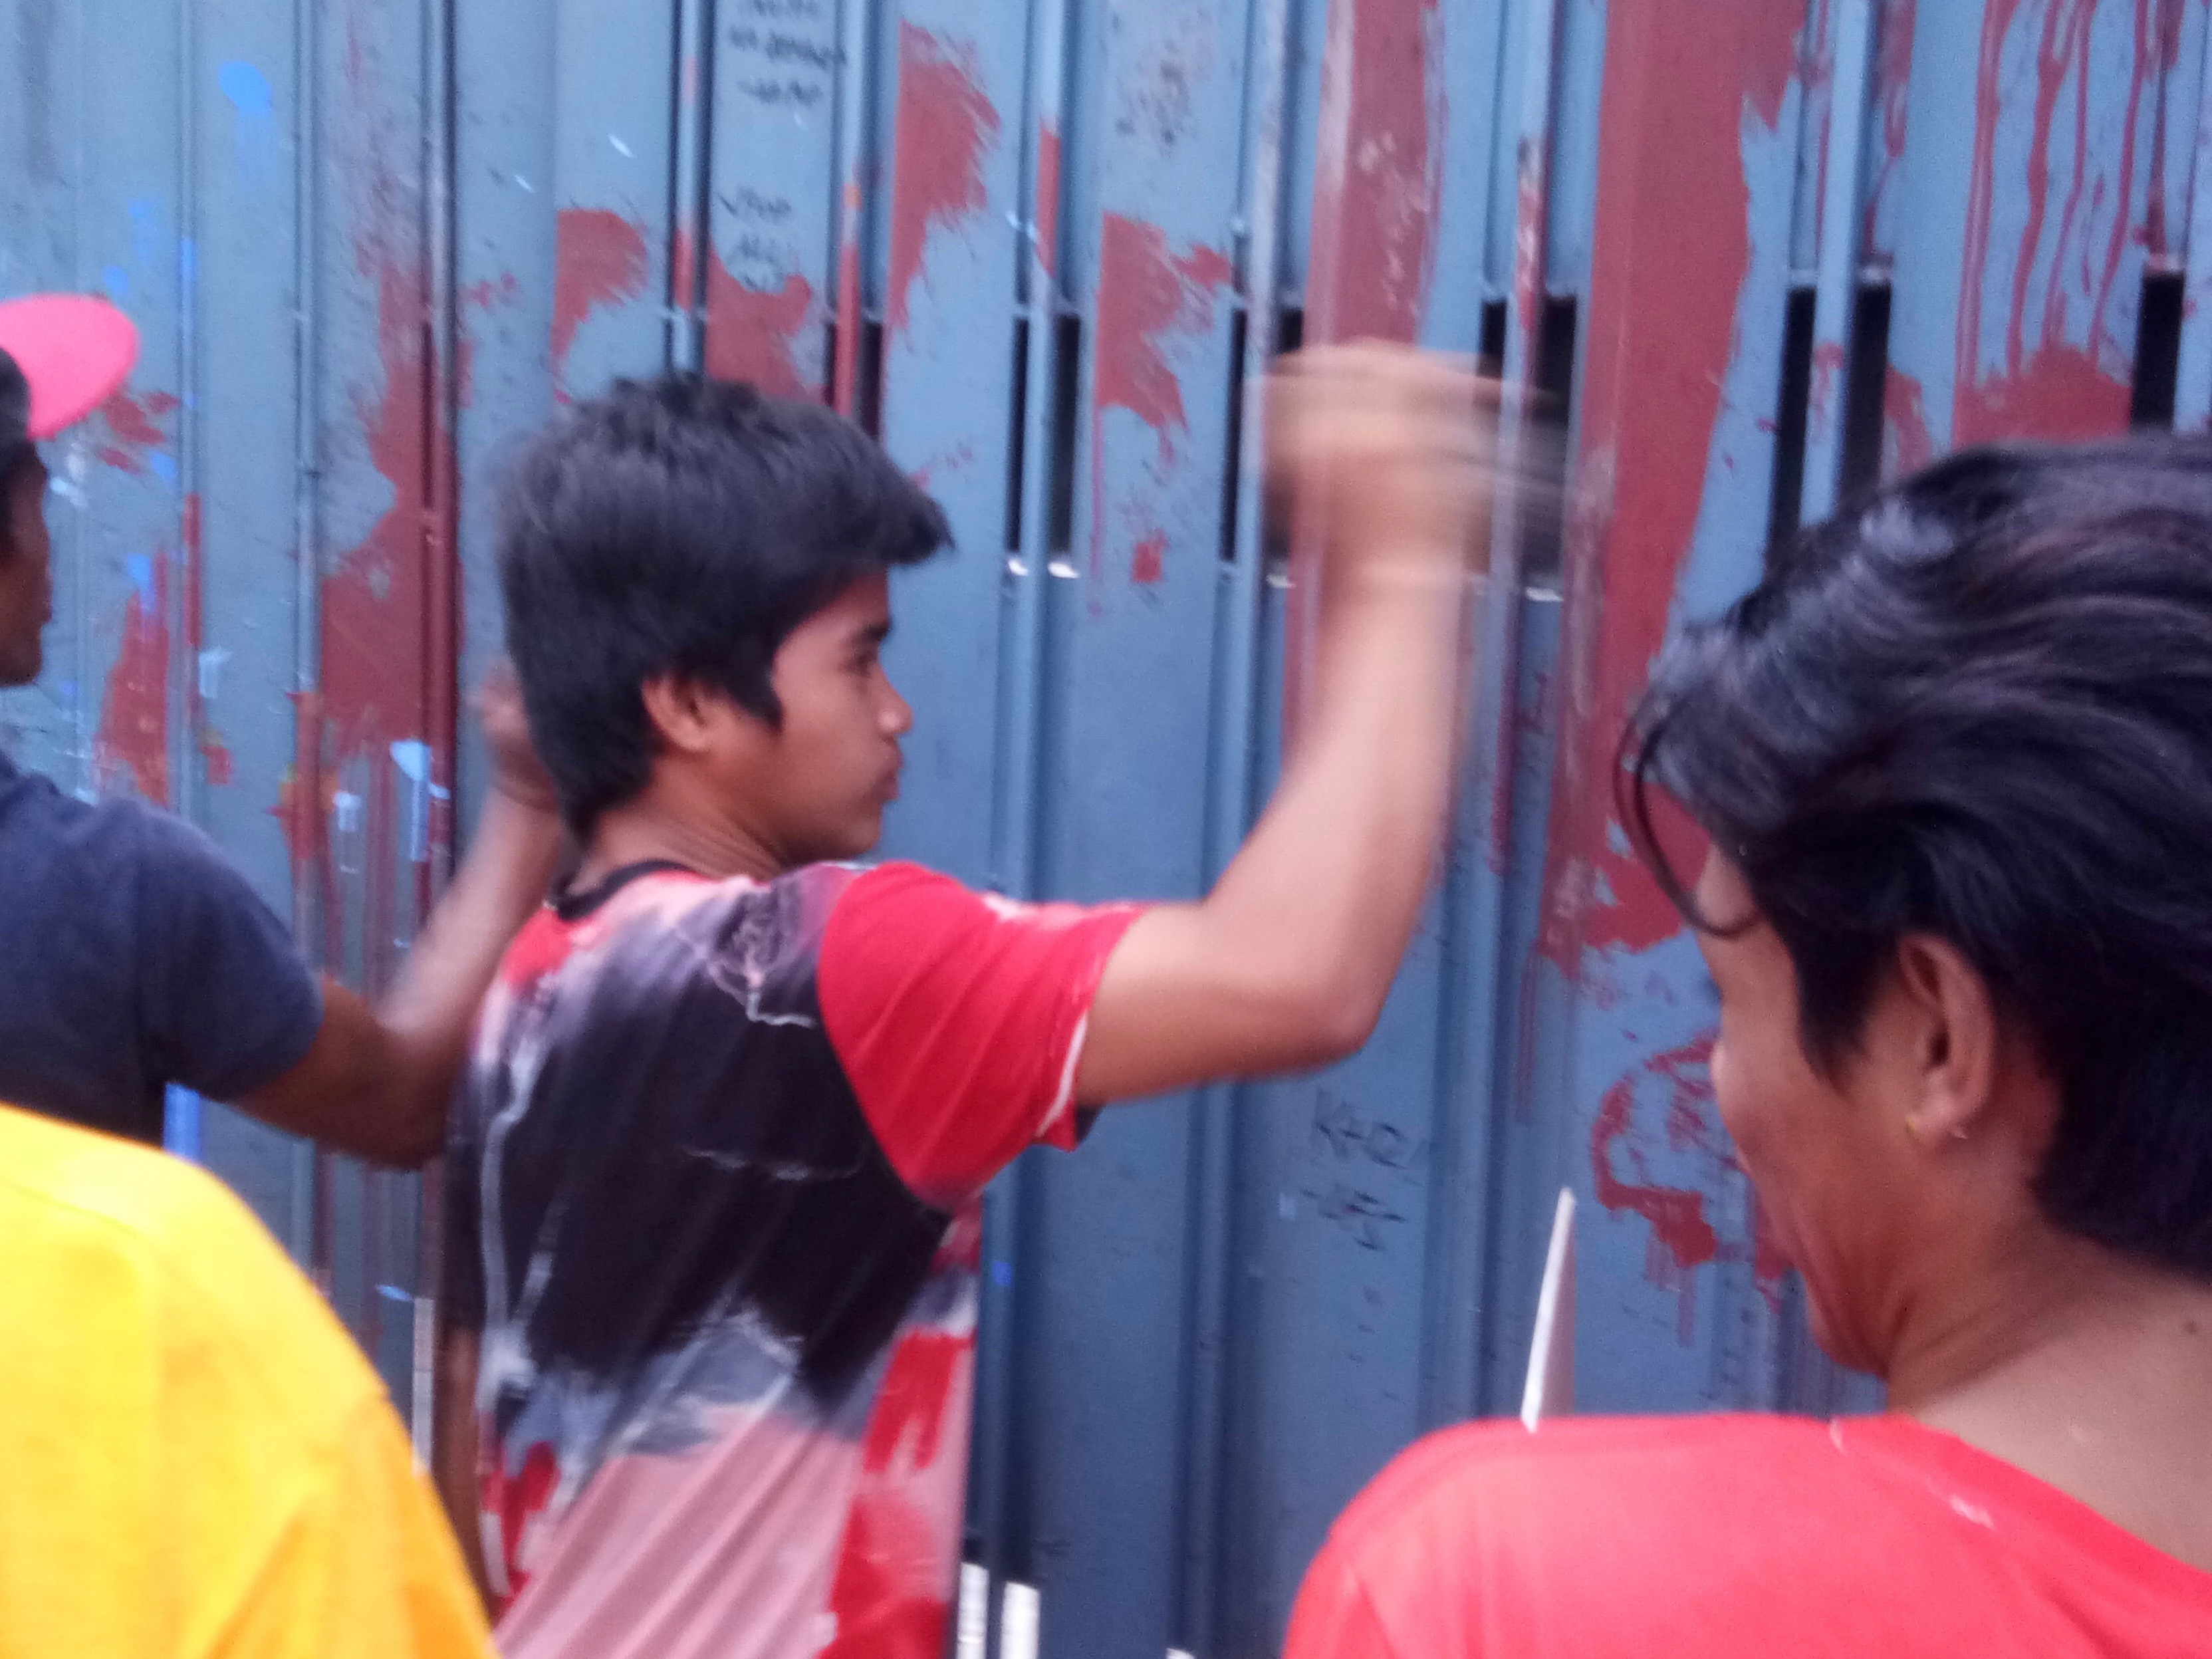 Protesters bang on Ched gates (Photo by Daniel Boone/Bulatlat)